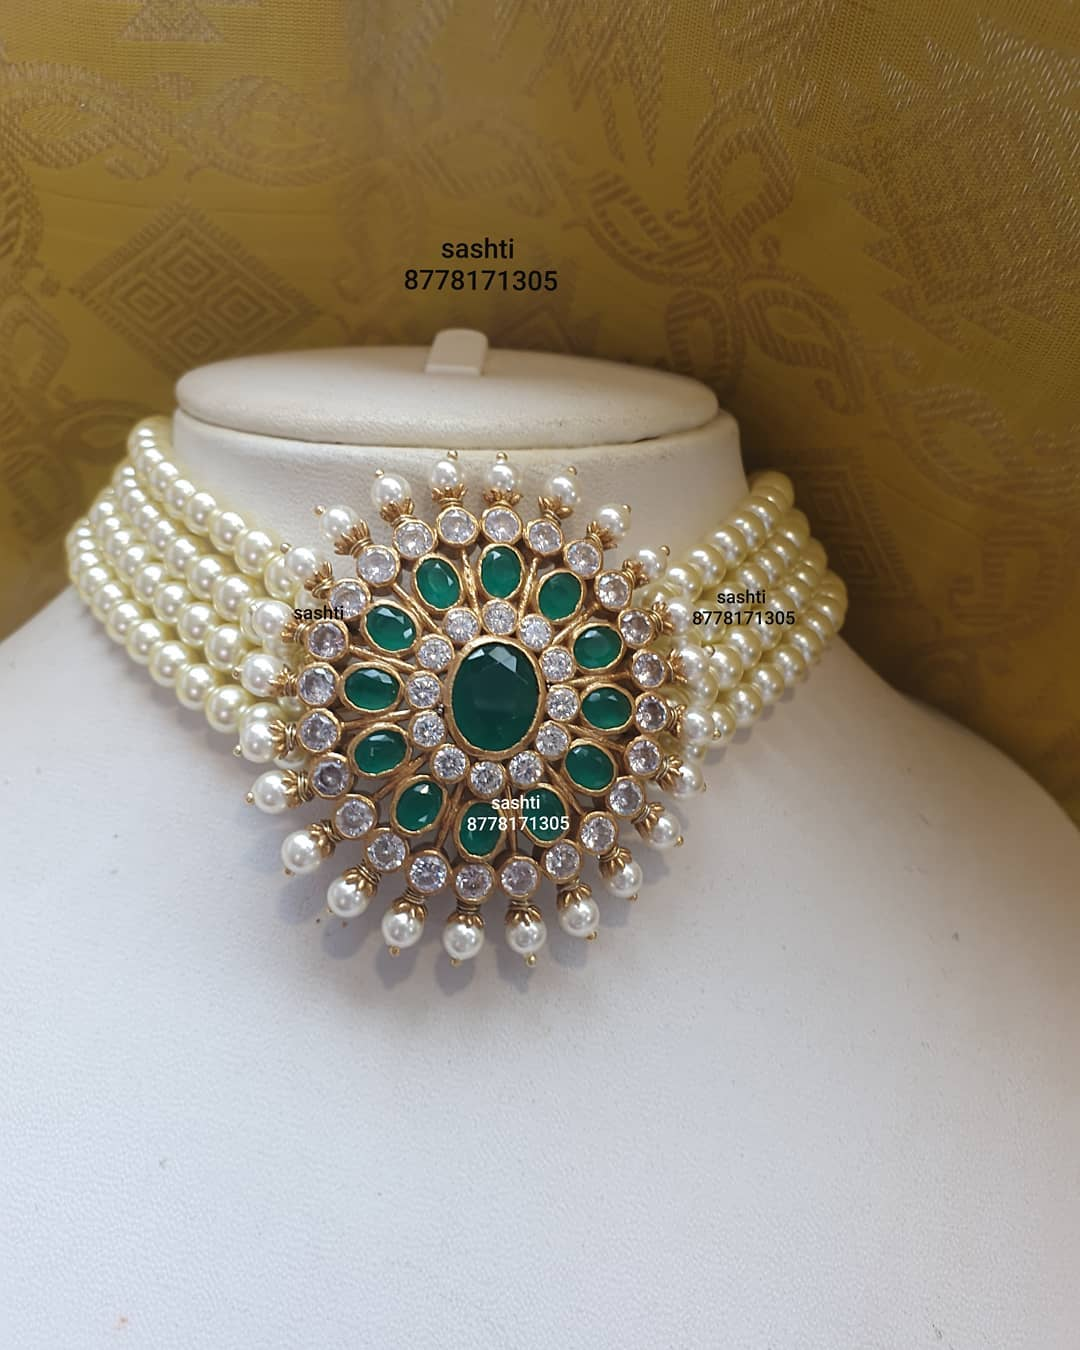 pearl-choker-necklace-with-grand-stone-pendant